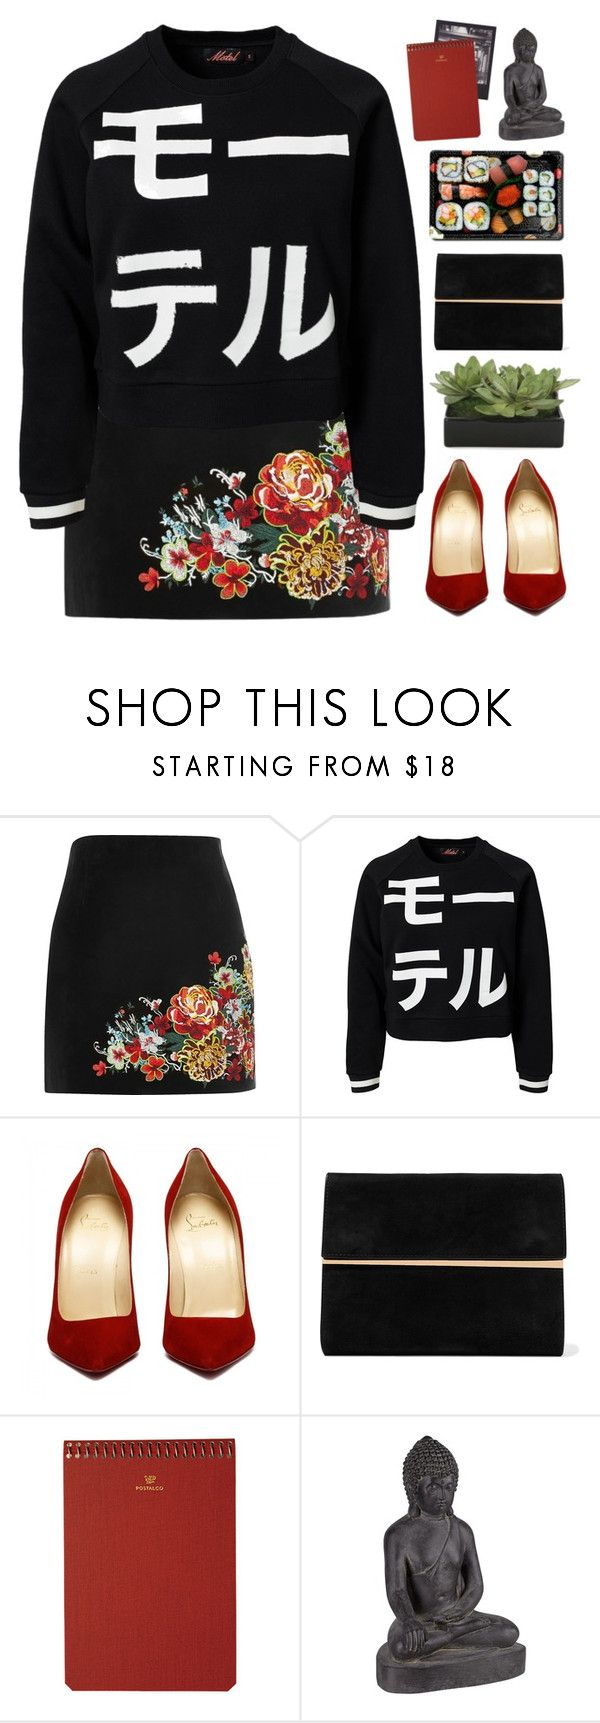 """""""the less i know the better"""" by sierrasaphira ❤ liked on Polyvore featuring River Island, Motel, Maison Margiela, Polaroid, Postalco, Lux-Art Silks, Jura and blinddate"""